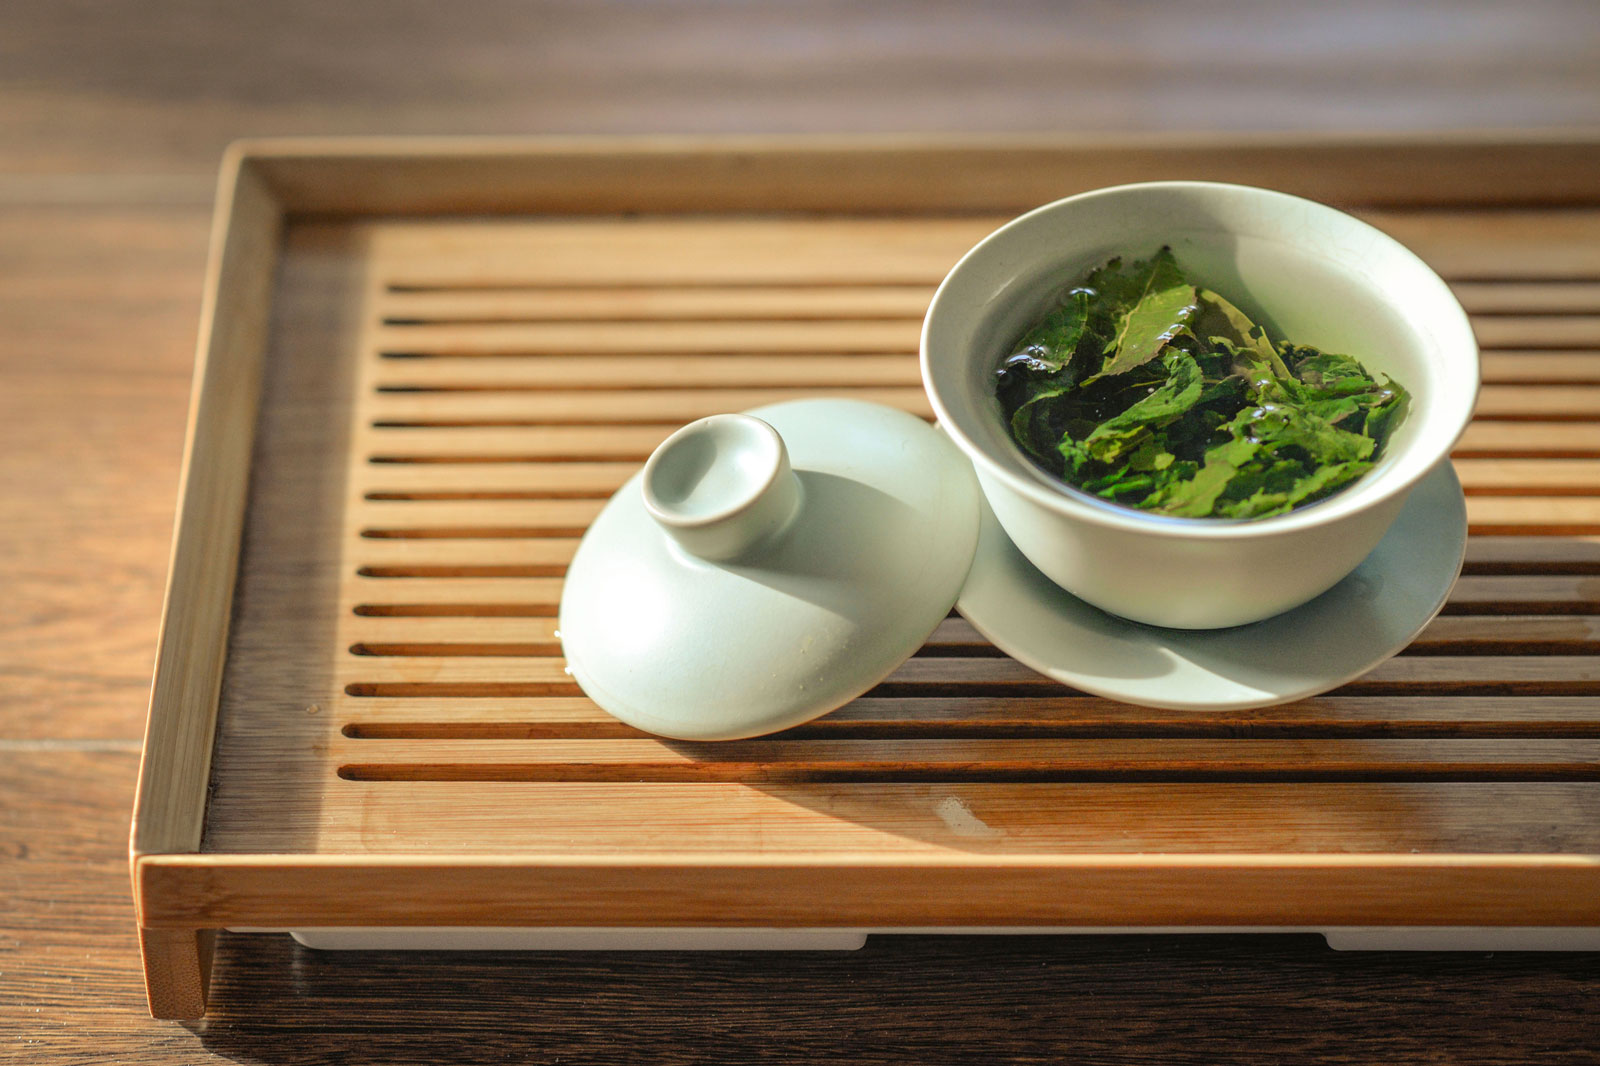 Green Tea | How Drinking Green Tea Can Help Promote A Healthy Diet